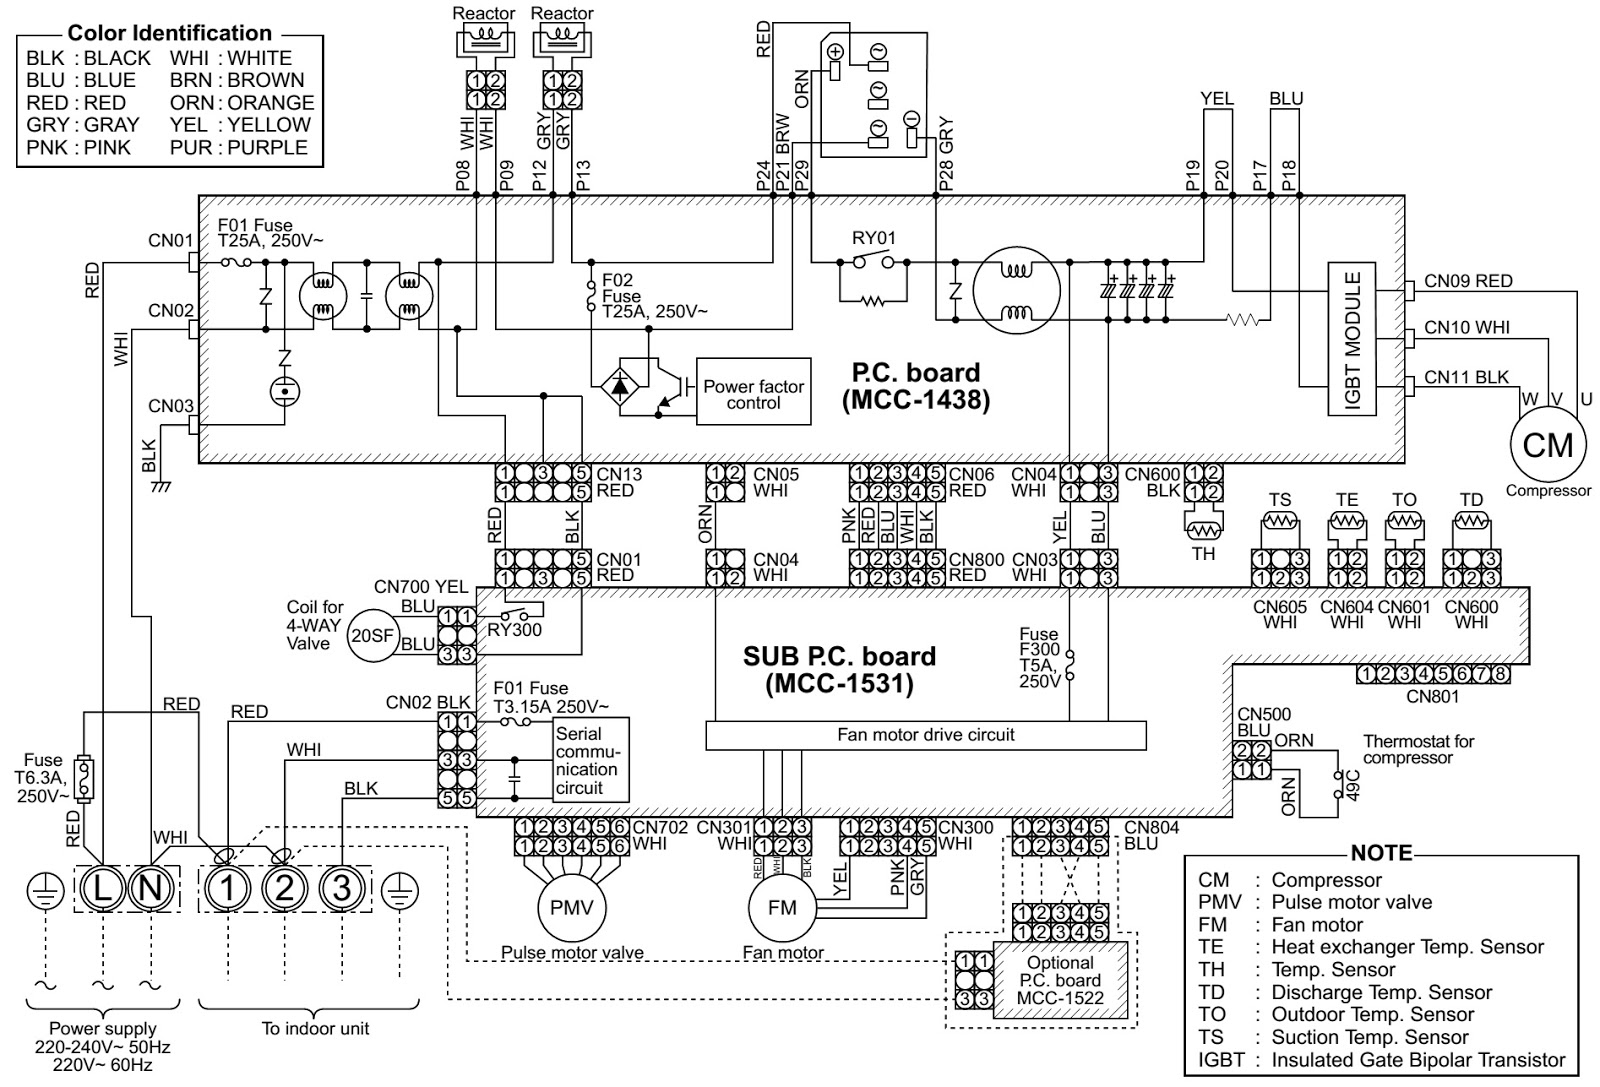 Toshiba Air Conditioner Wiring Diagram : Toshiba airconditioners split type wiring diagram digital